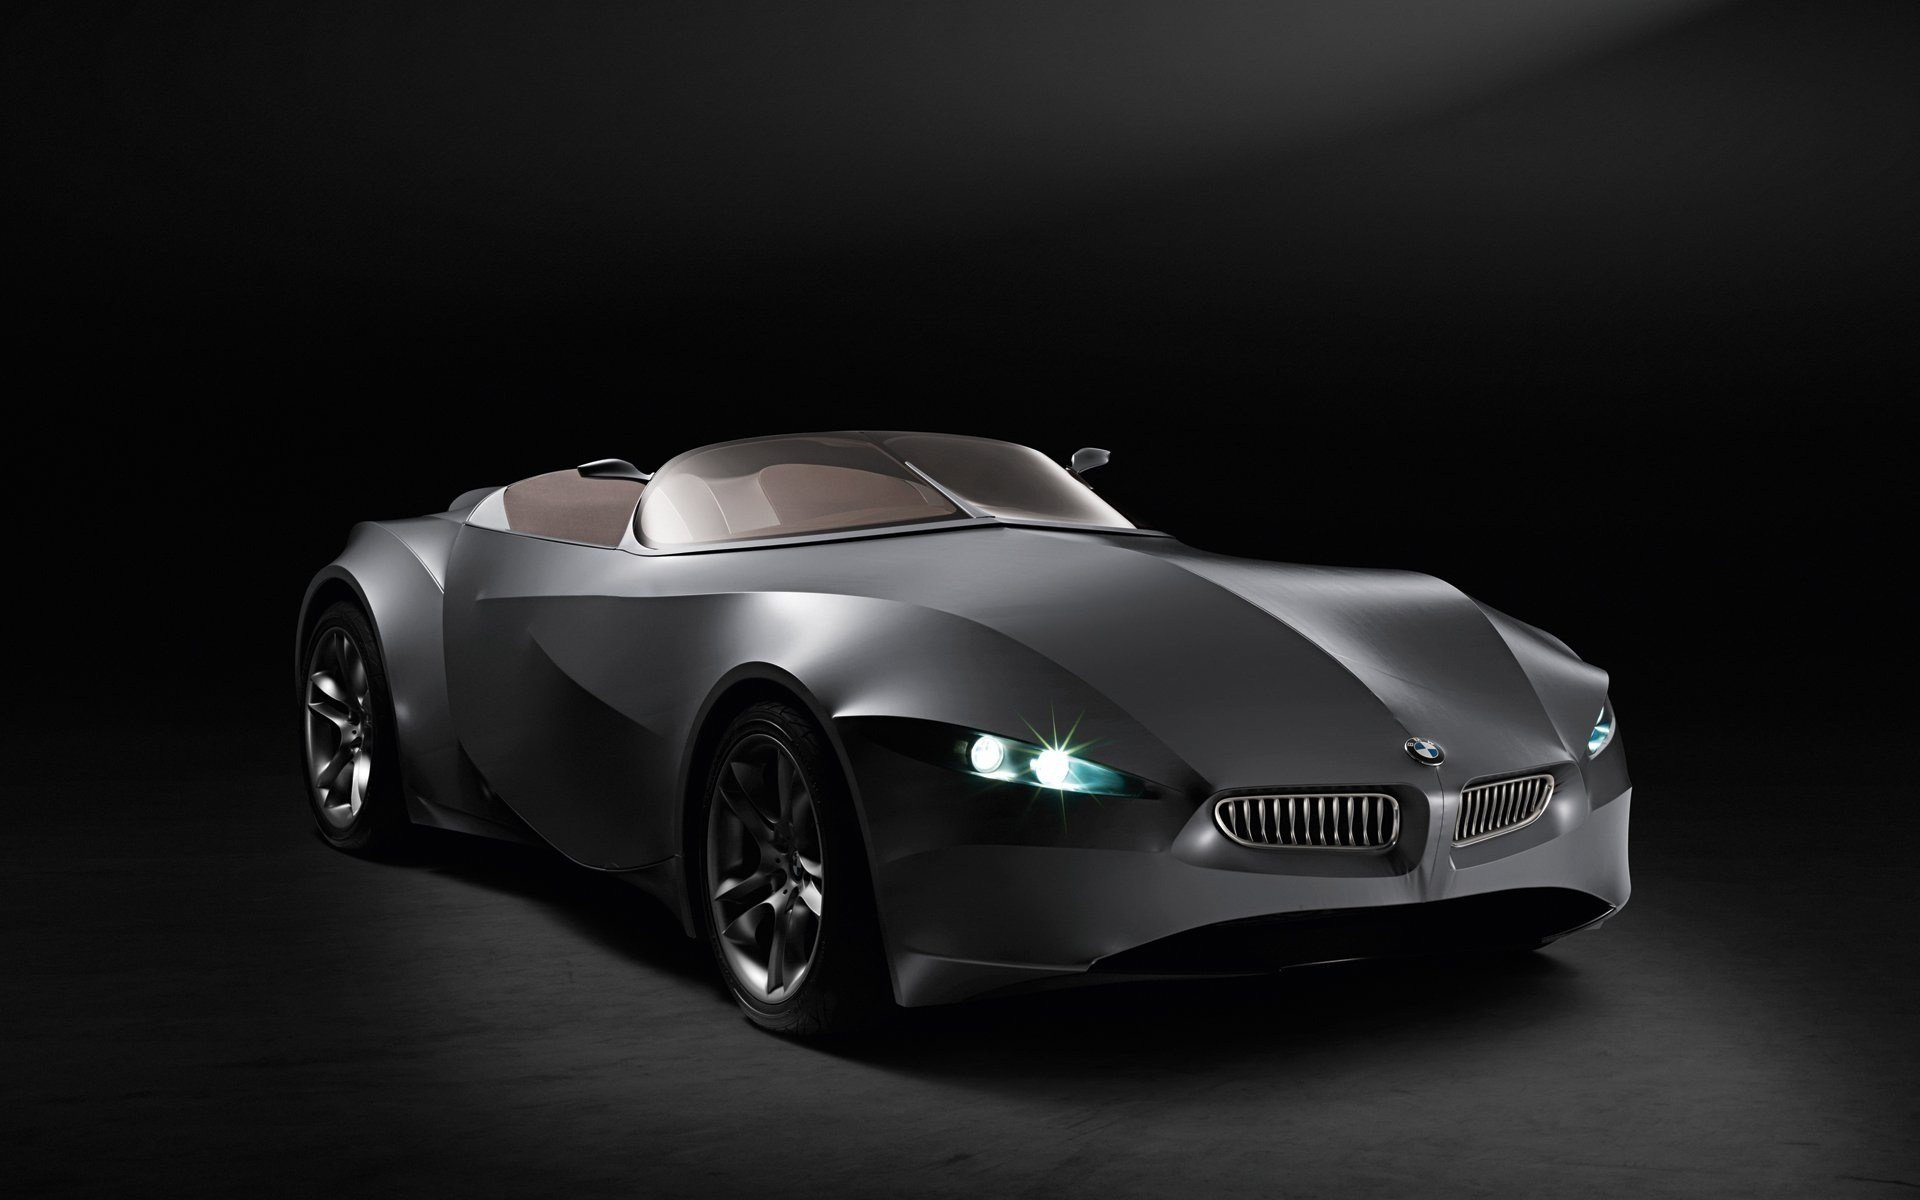 Latest Bmw Prototype Concept Car Wallpapers In Jpg Format For Free Download